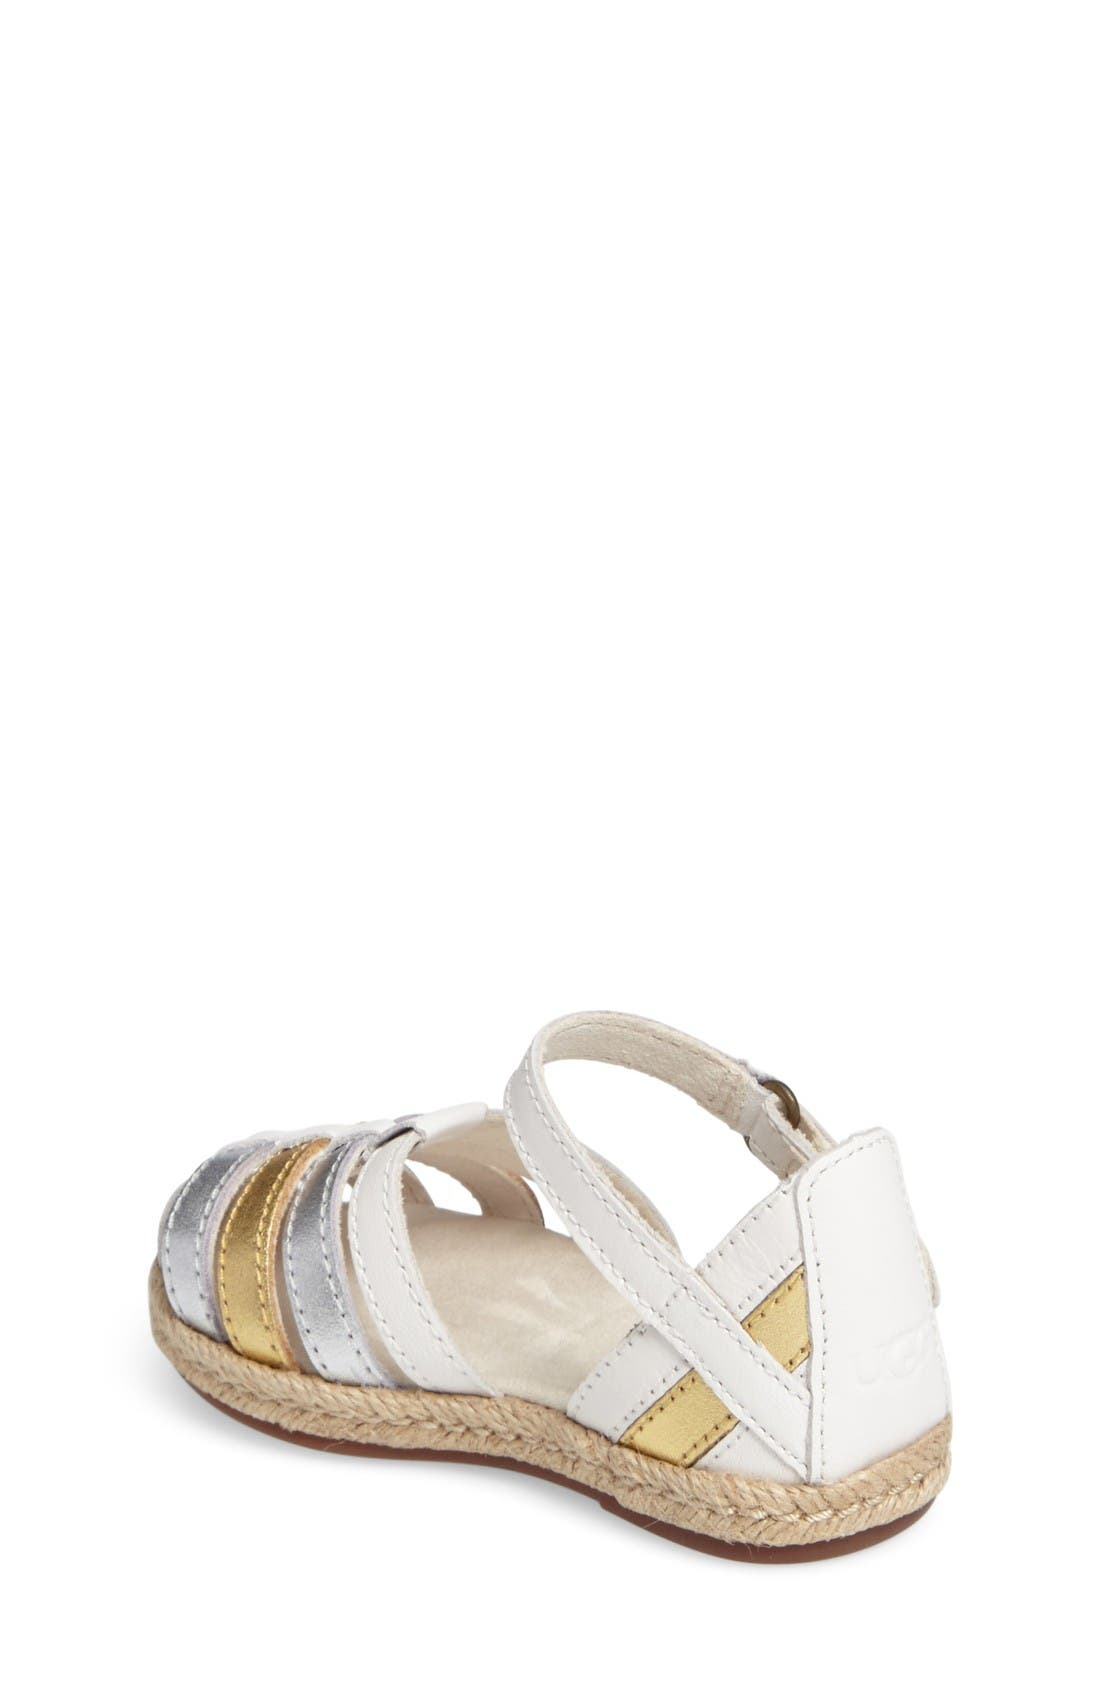 Alternate Image 2  - UGG® Matilde Espadrille Sandal (Walker & Toddler)